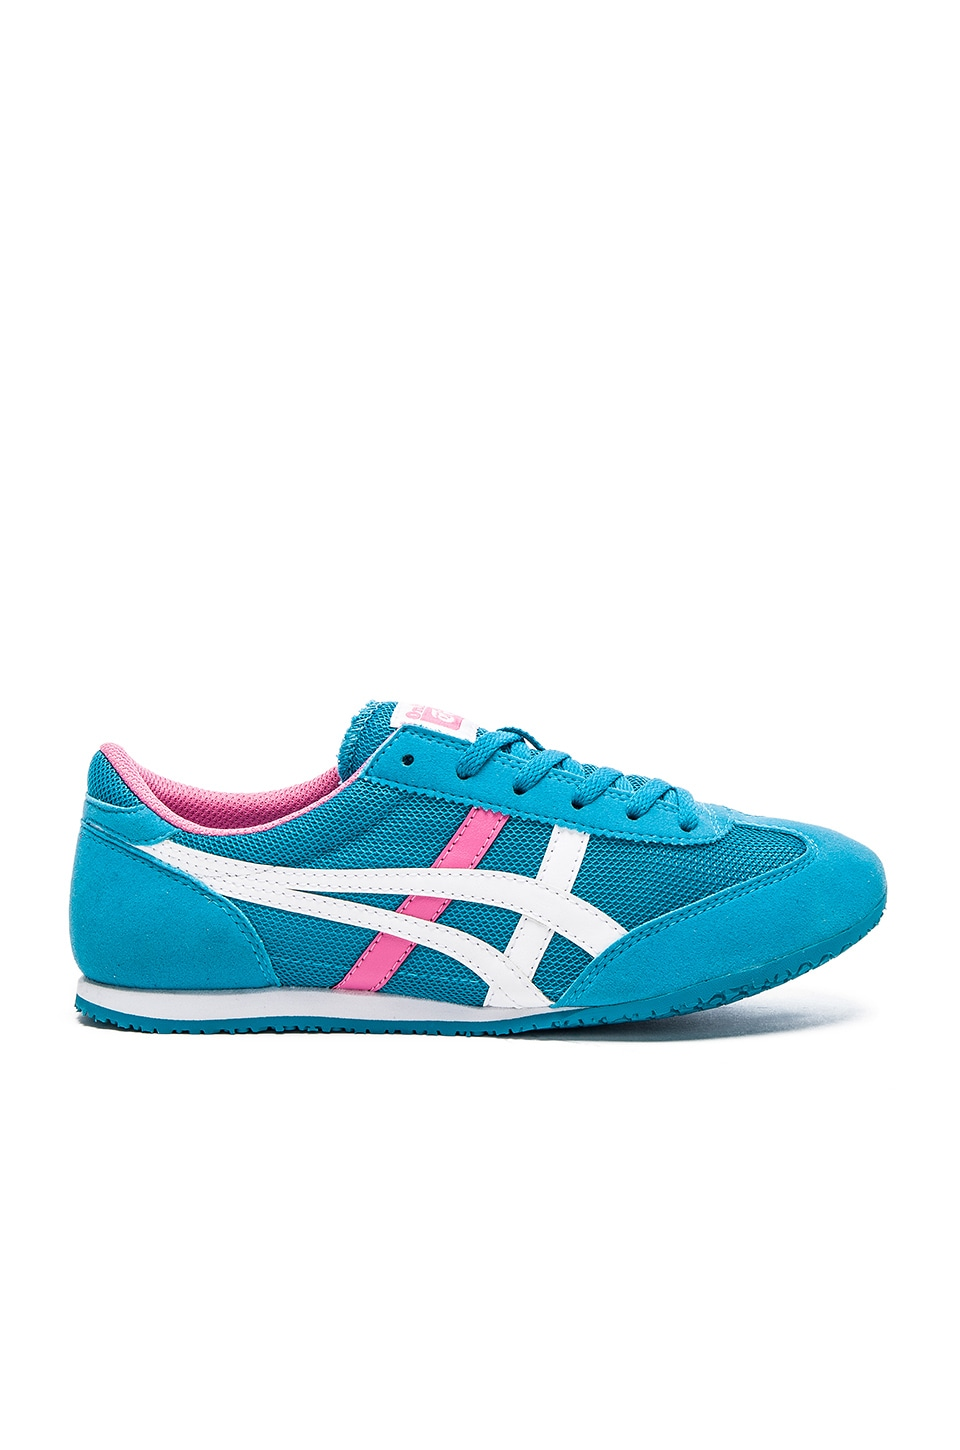 release date 04368 53453 Onitsuka Tiger Machu Racer in Algier's Blue & White | REVOLVE